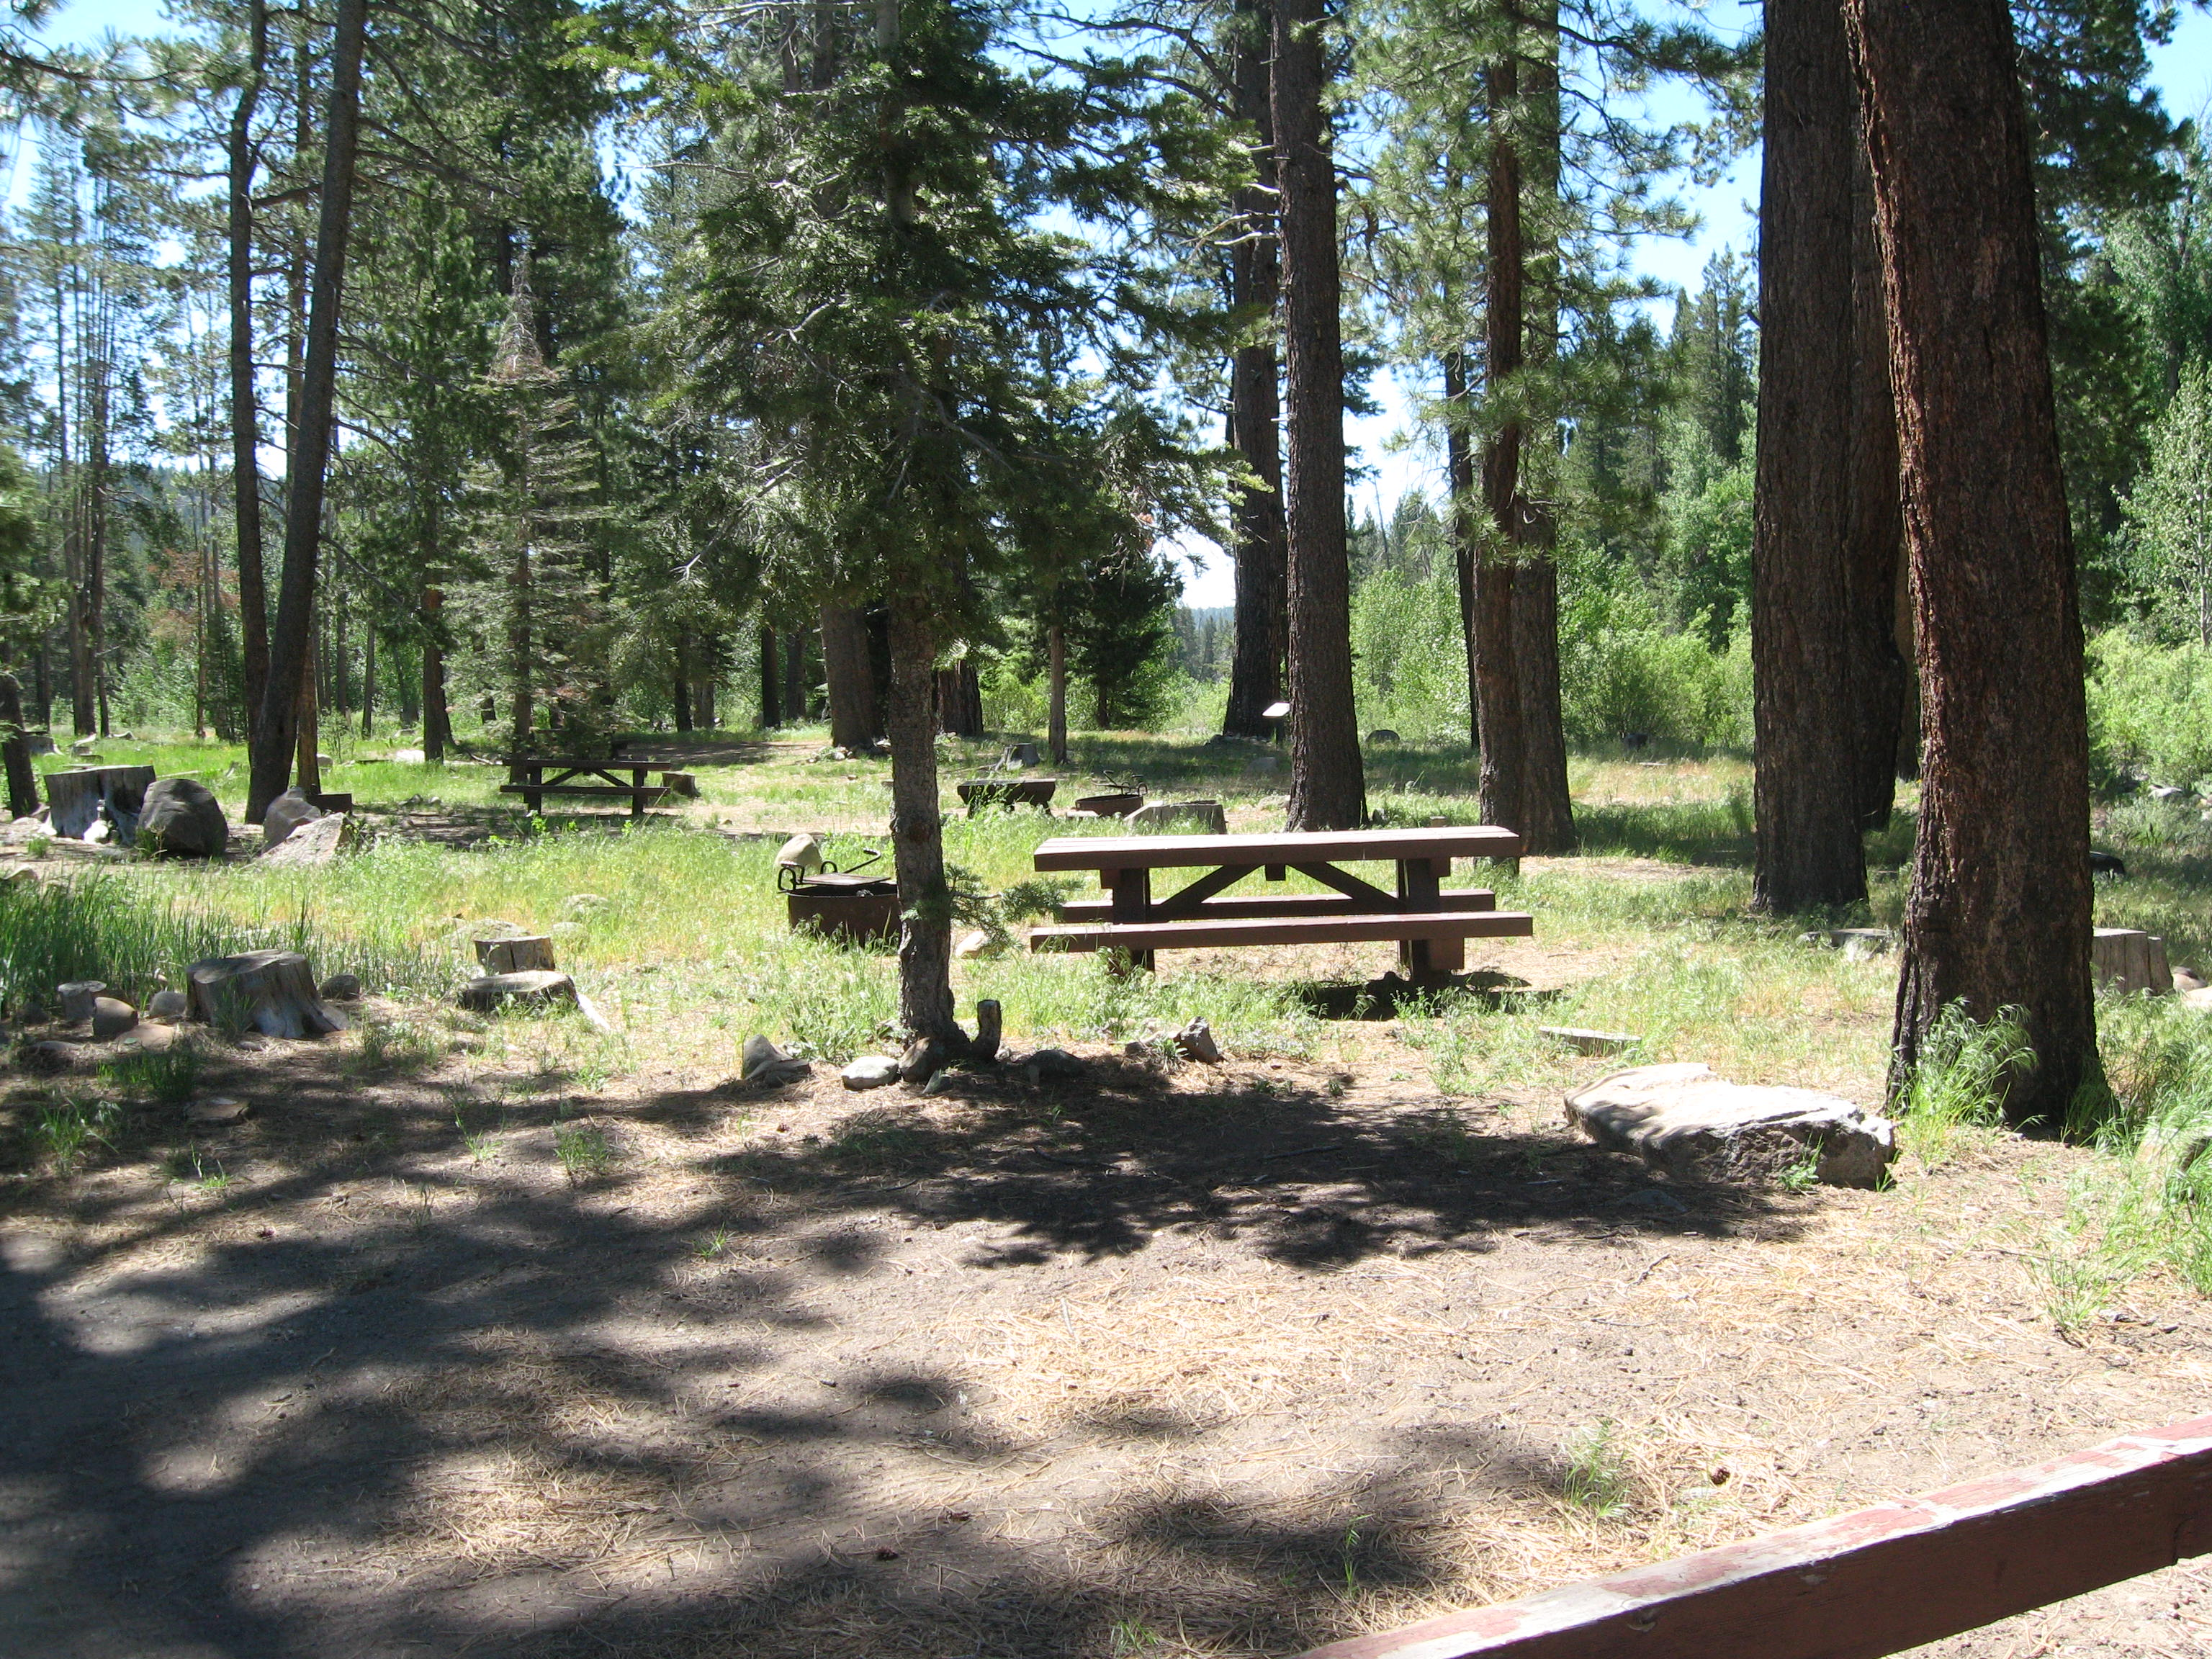 Picnic table, fire ring under pines